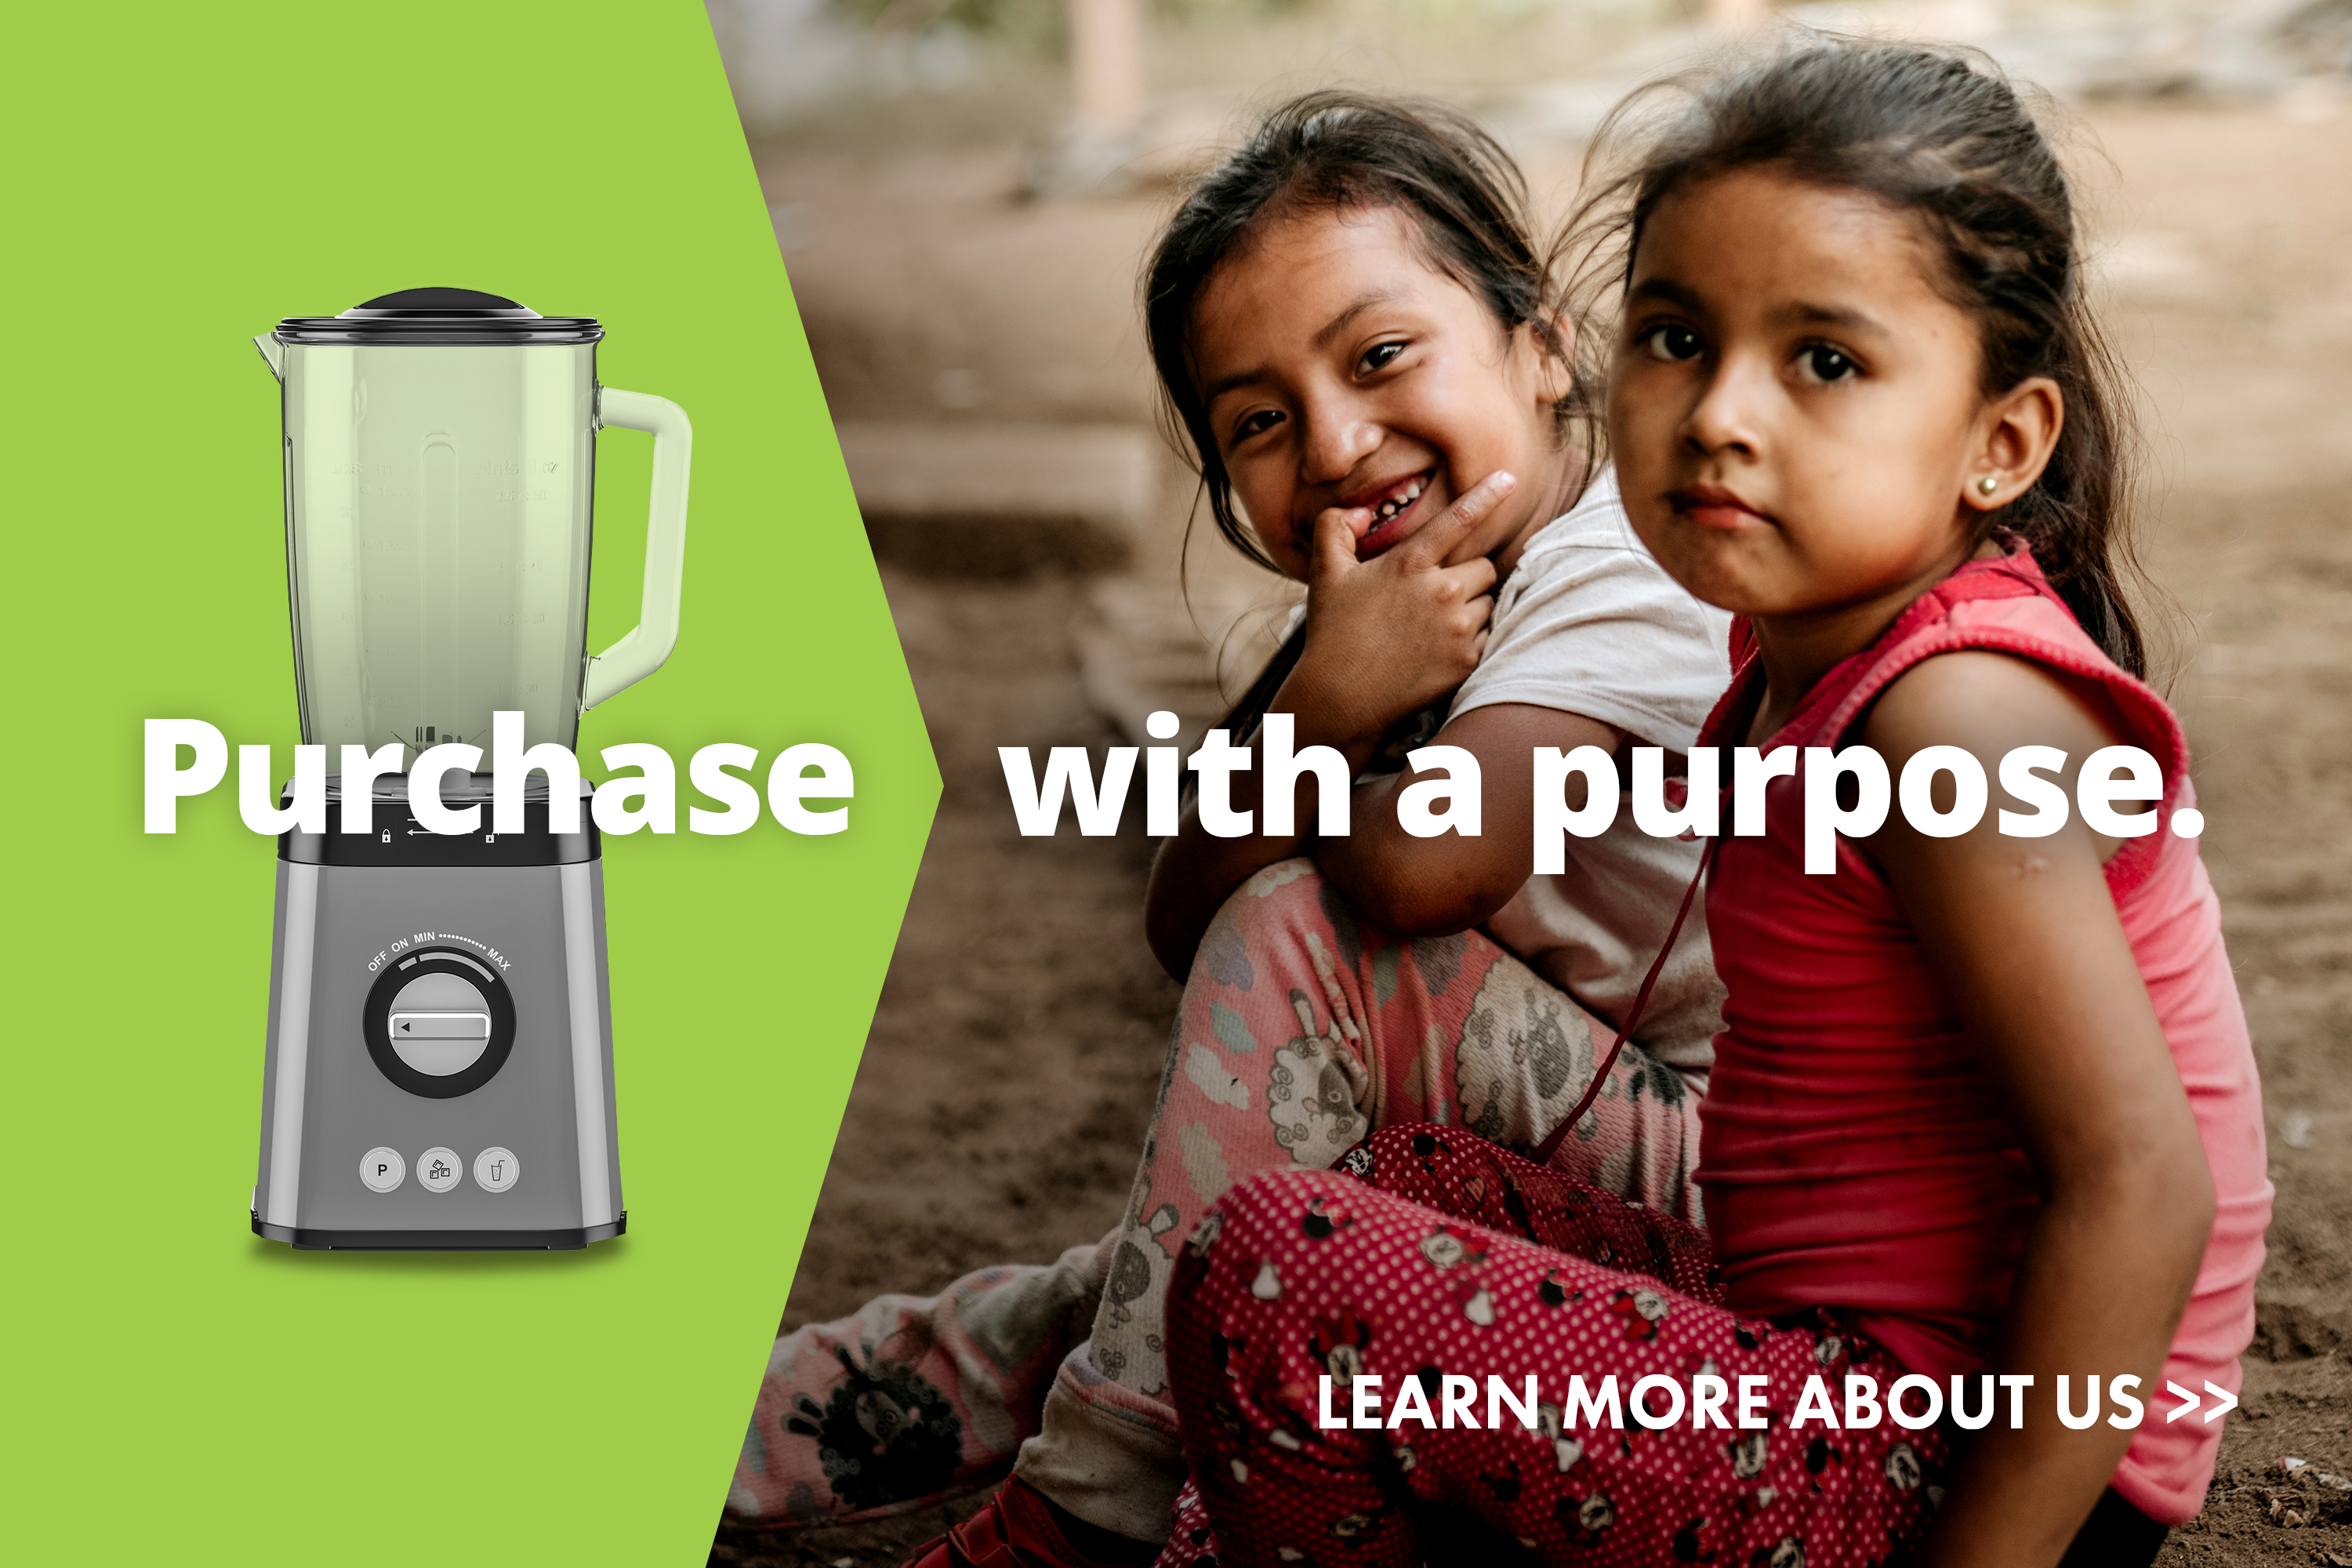 B2 Outlet Stores, Purchase With A Purpose, Guatemala Give Back